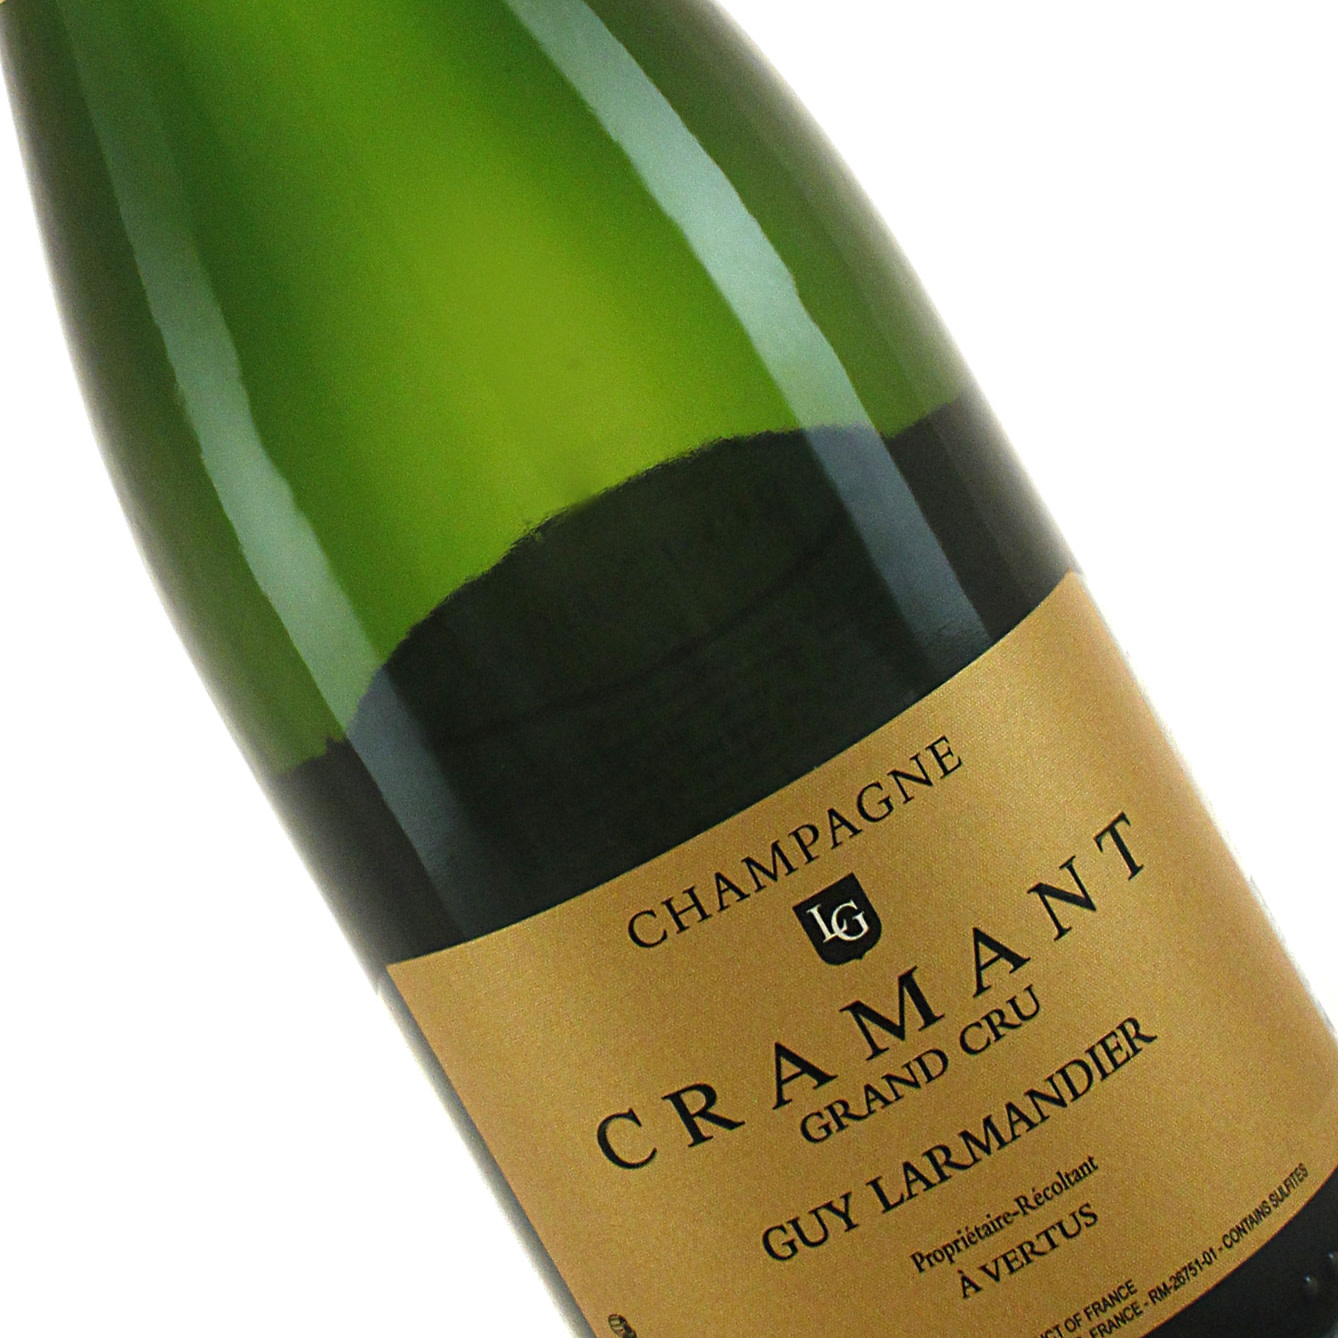 Guy Larmandier N.V.   Grand Cru Brut Champagne